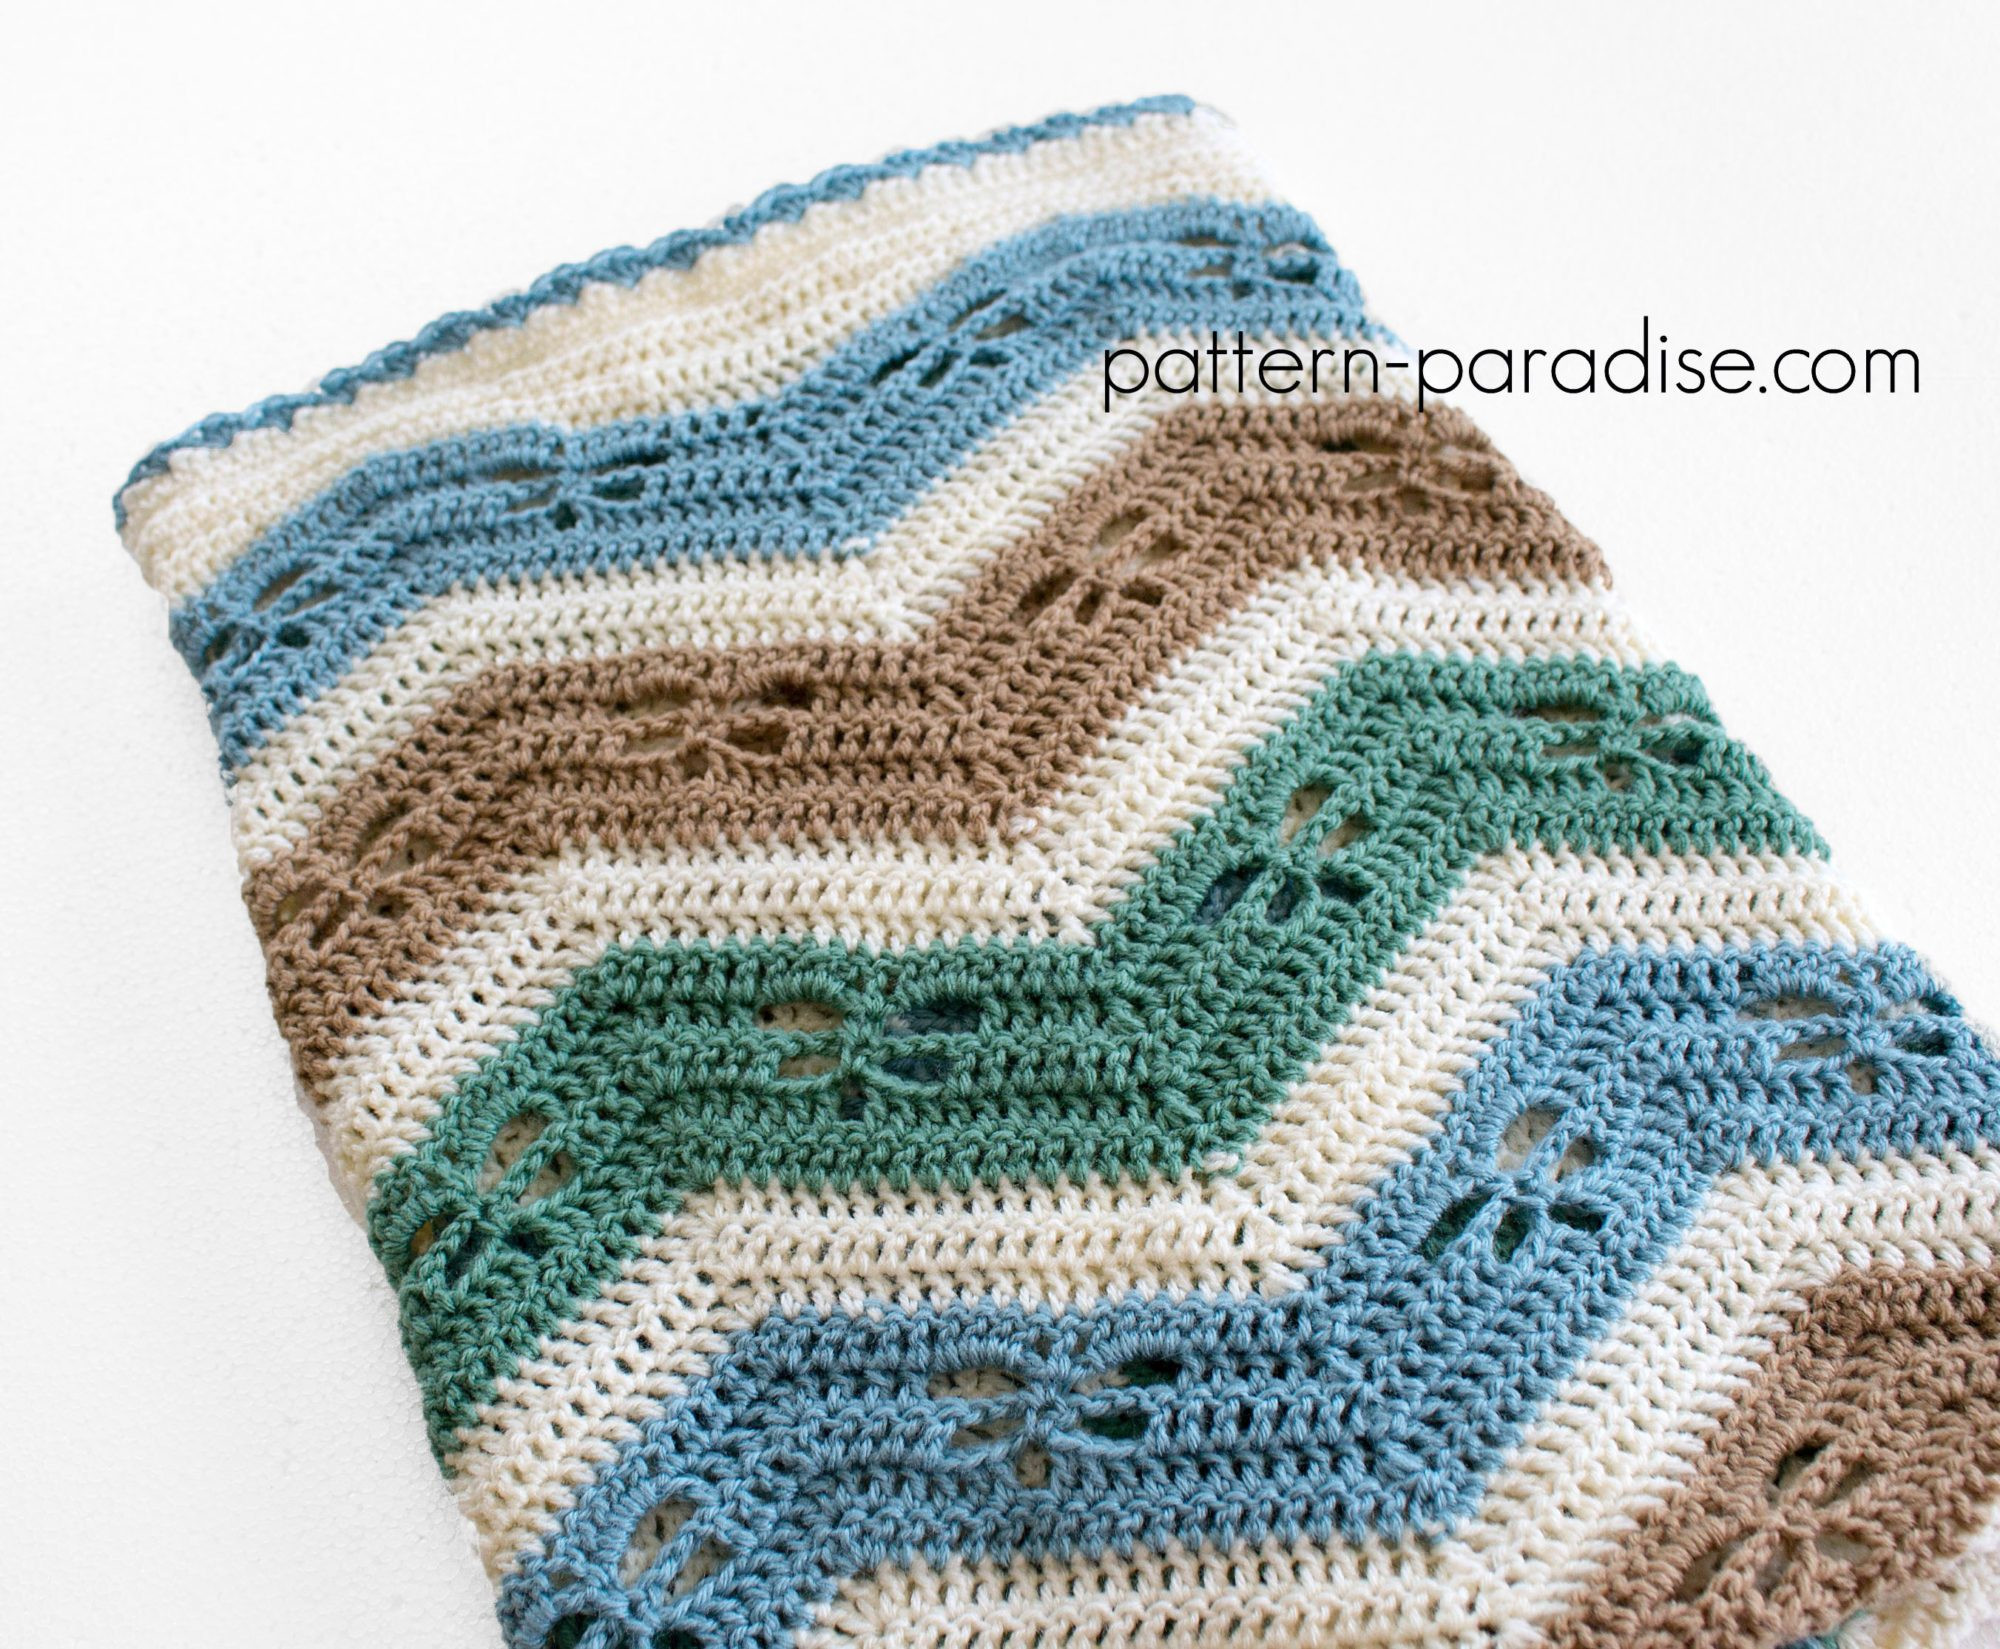 Chevron Baby Blanket Inspirational Free Crochet Pattern Dragonfly Chevron Baby Blanket Of Attractive 49 Pics Chevron Baby Blanket